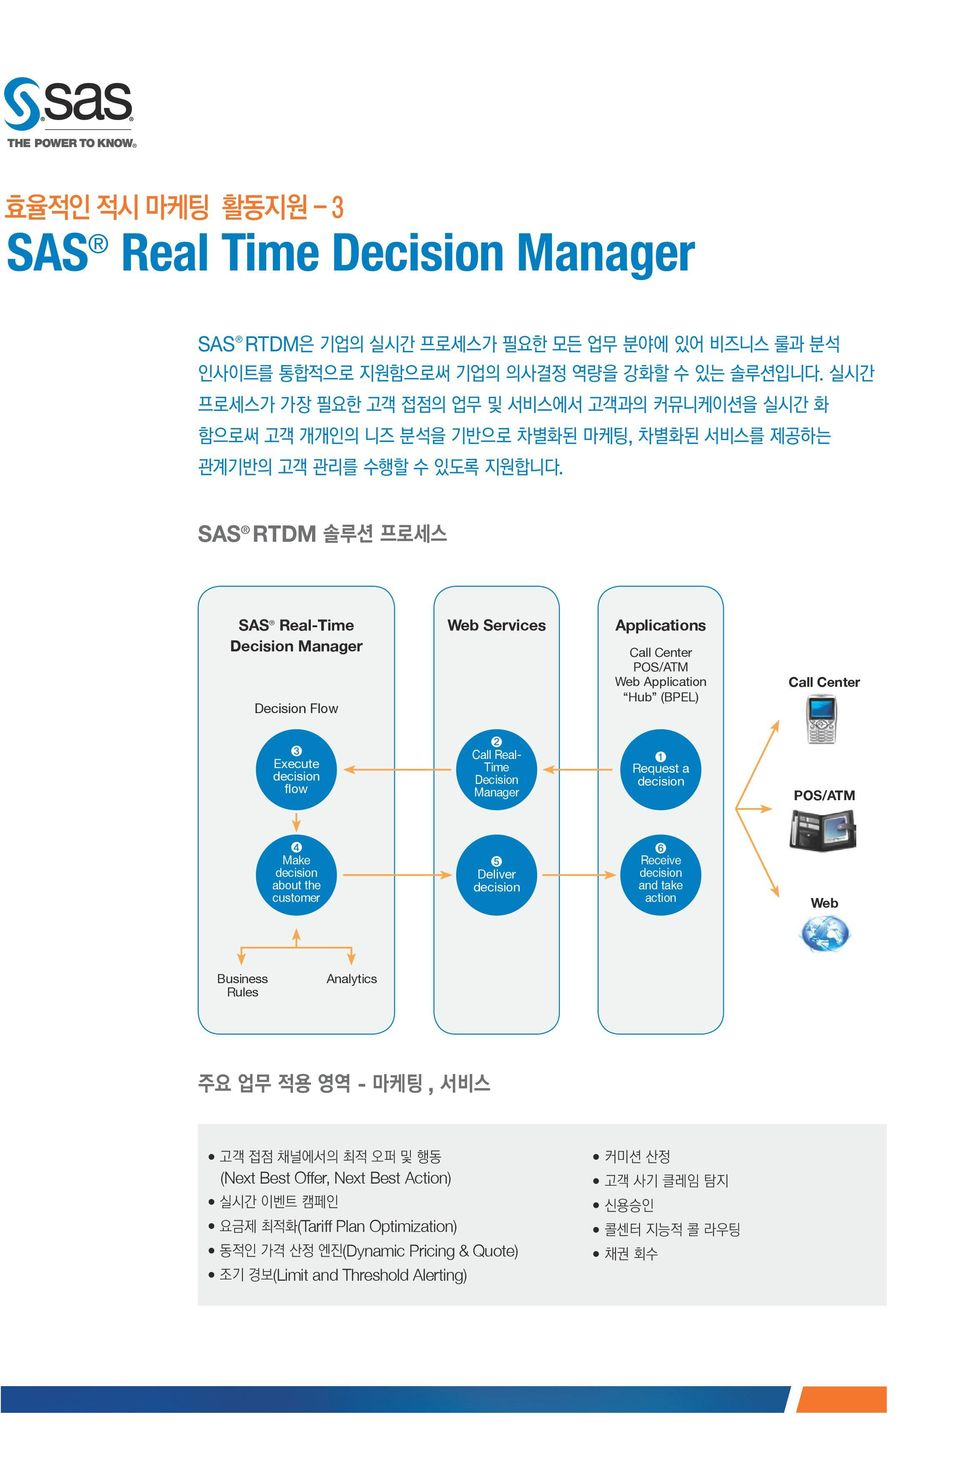 SAS RTDM SAS Real-Time Decision Manager Decision Flow Web Services Applications Call Center POS/ATM Web Application Hub (BPEL) Call Center ❸ Execute decision flow ❷ Call Real- Time